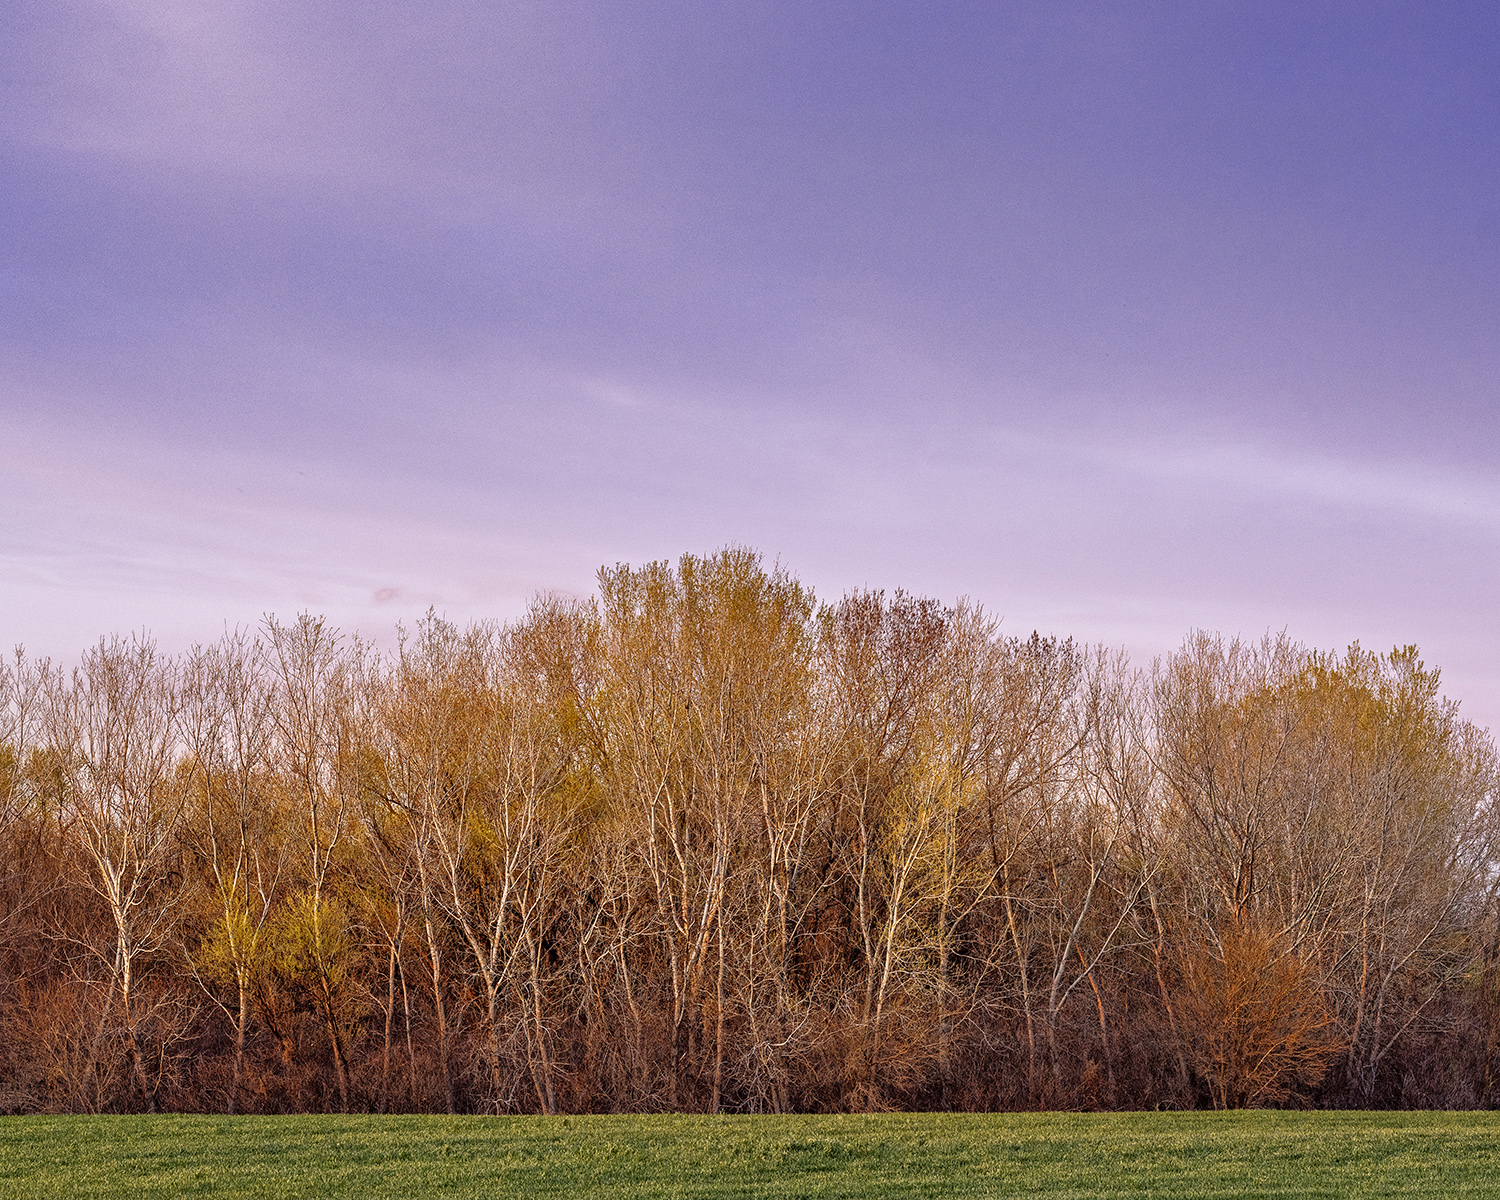 Field and Trees by  George Jerkovich - Masterpiece Online